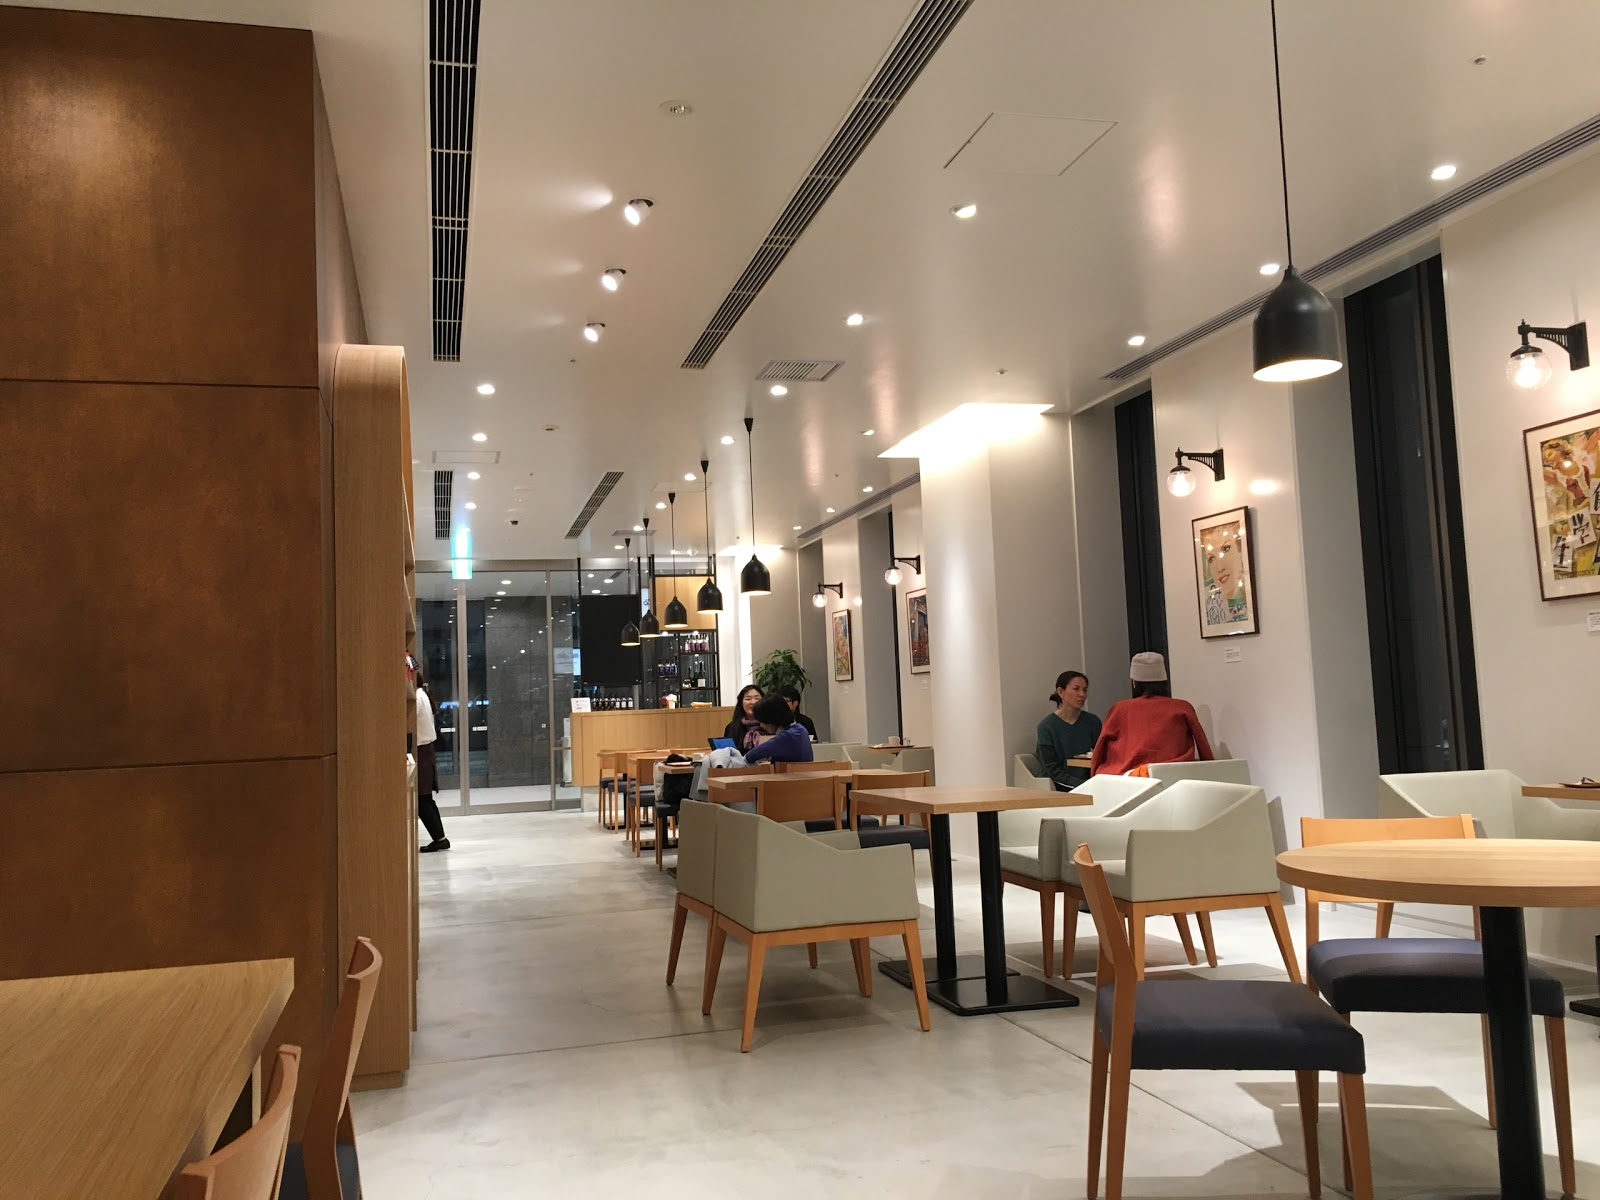 IDEA BEANS CAFE by Mi Cafetoにて